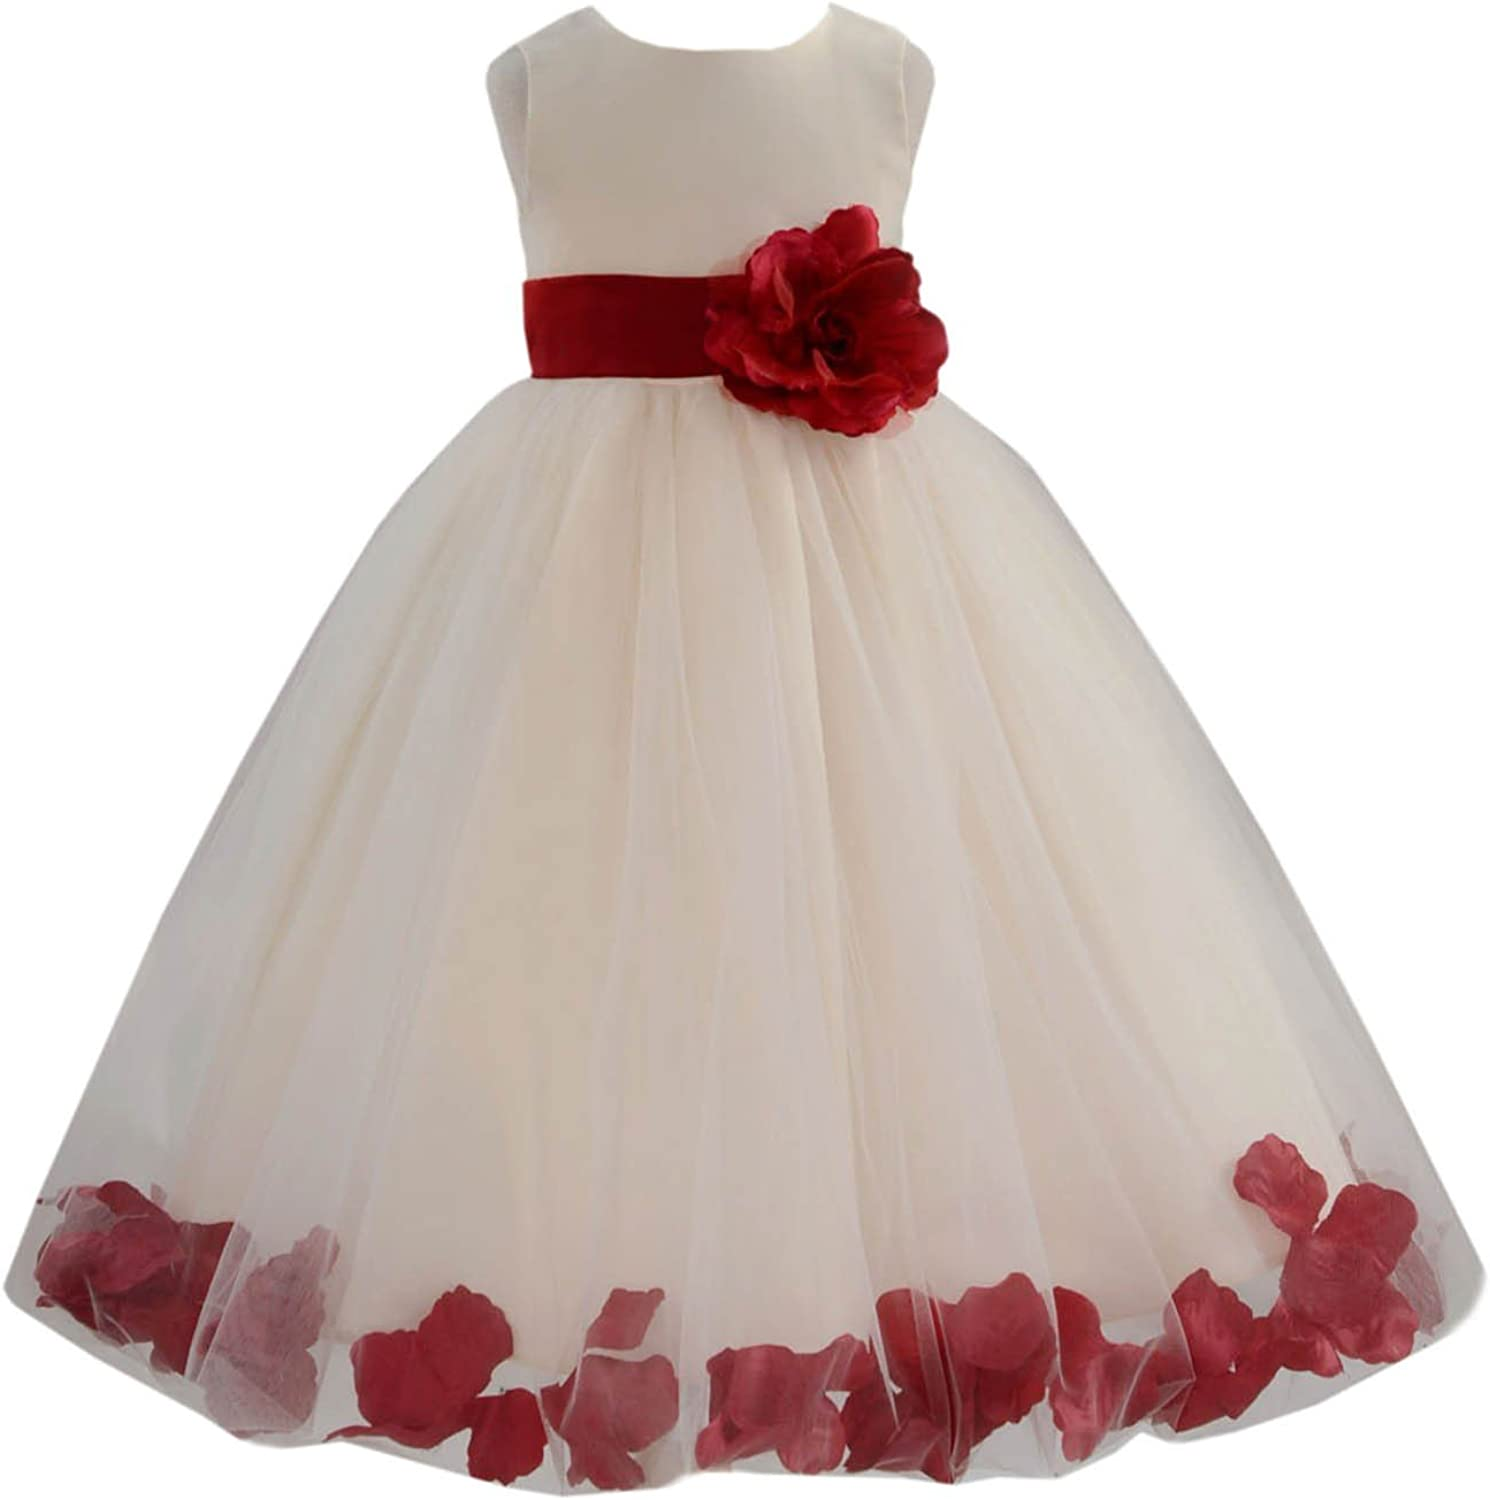 Ivory Flower Girl Bombing free shipping Dress Coral Turquoise Clover Apple E Red Green Rapid rise